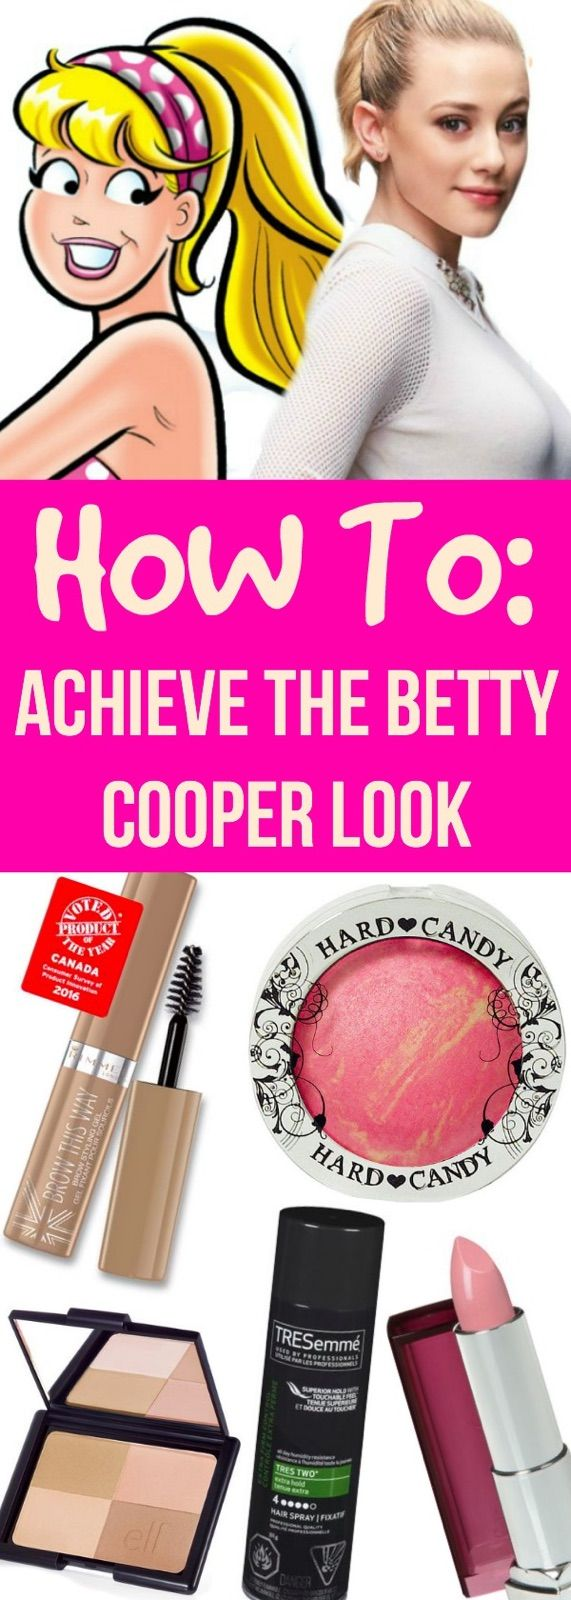 The Riverdale Look Betty Cooper Edition Step By Step Tutorial On